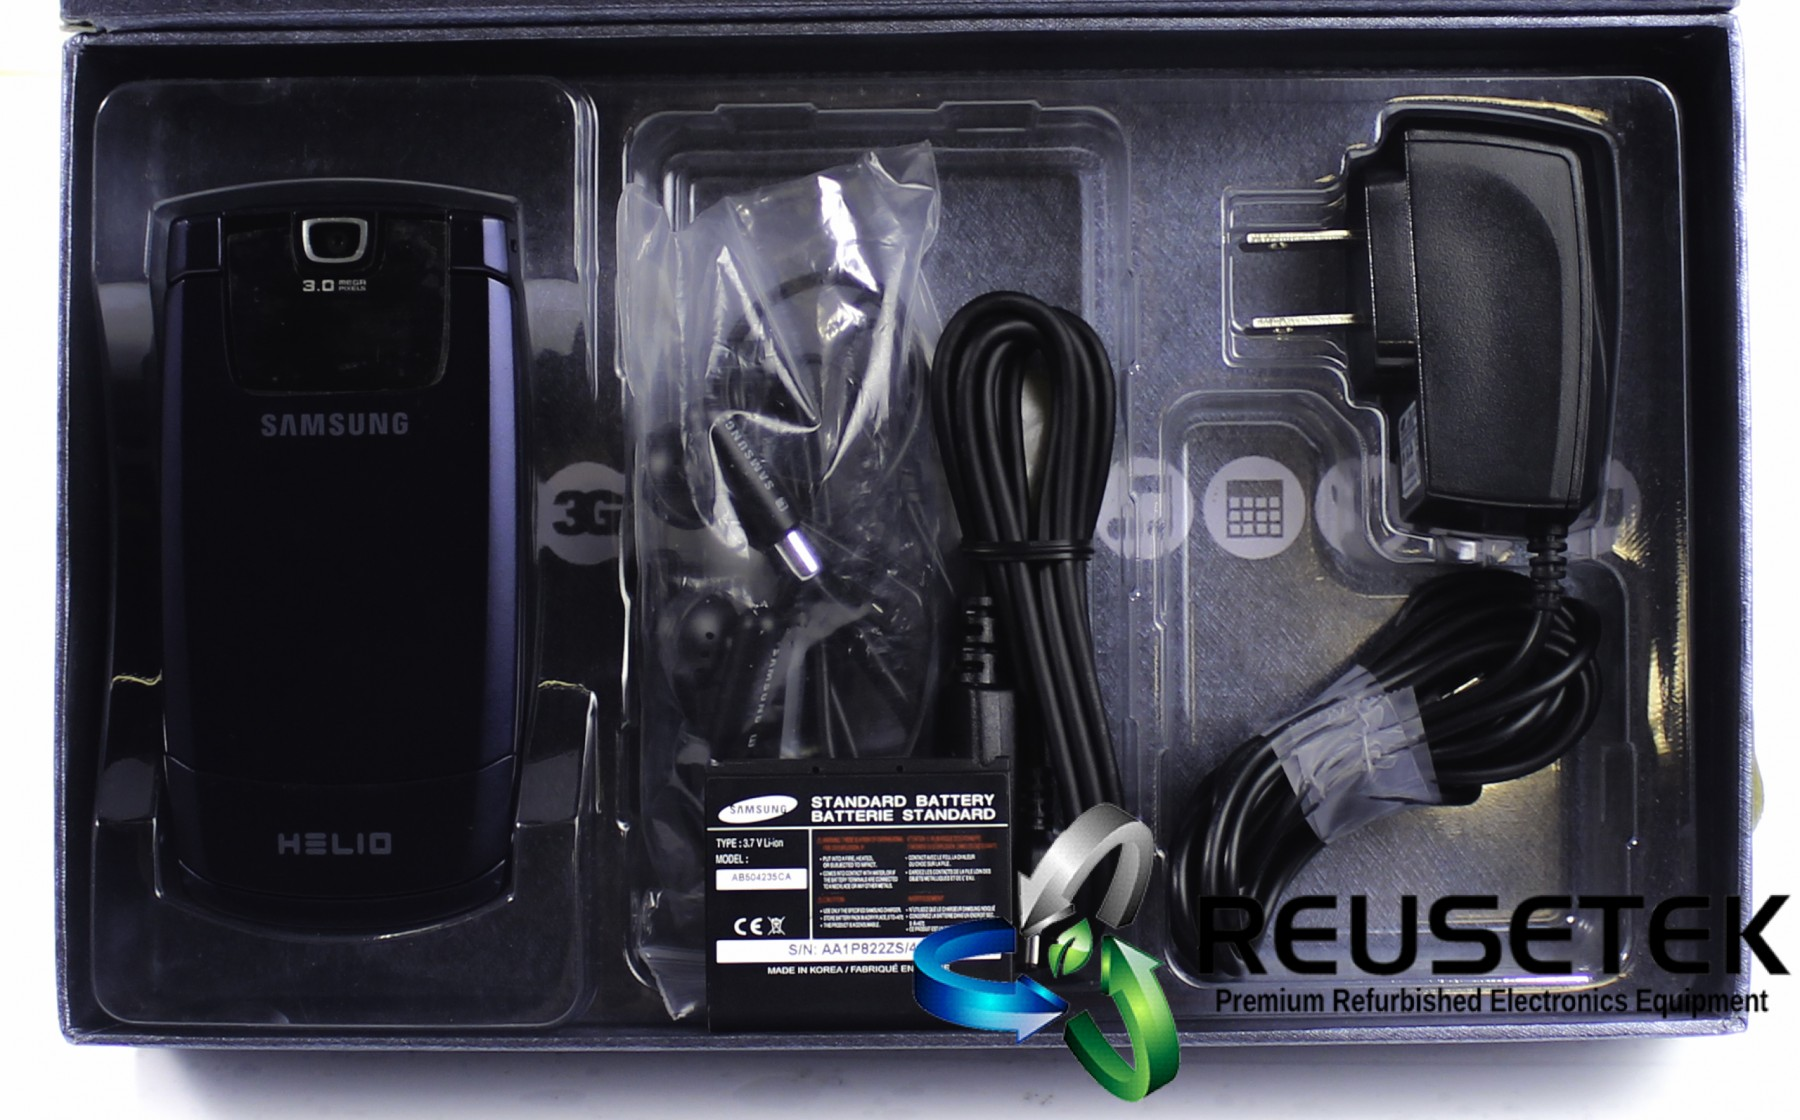 5000317696079909-Samsung SPH-A513 Helio Fin Set GH69-05316A Virgin Mobile Cell Phone-image